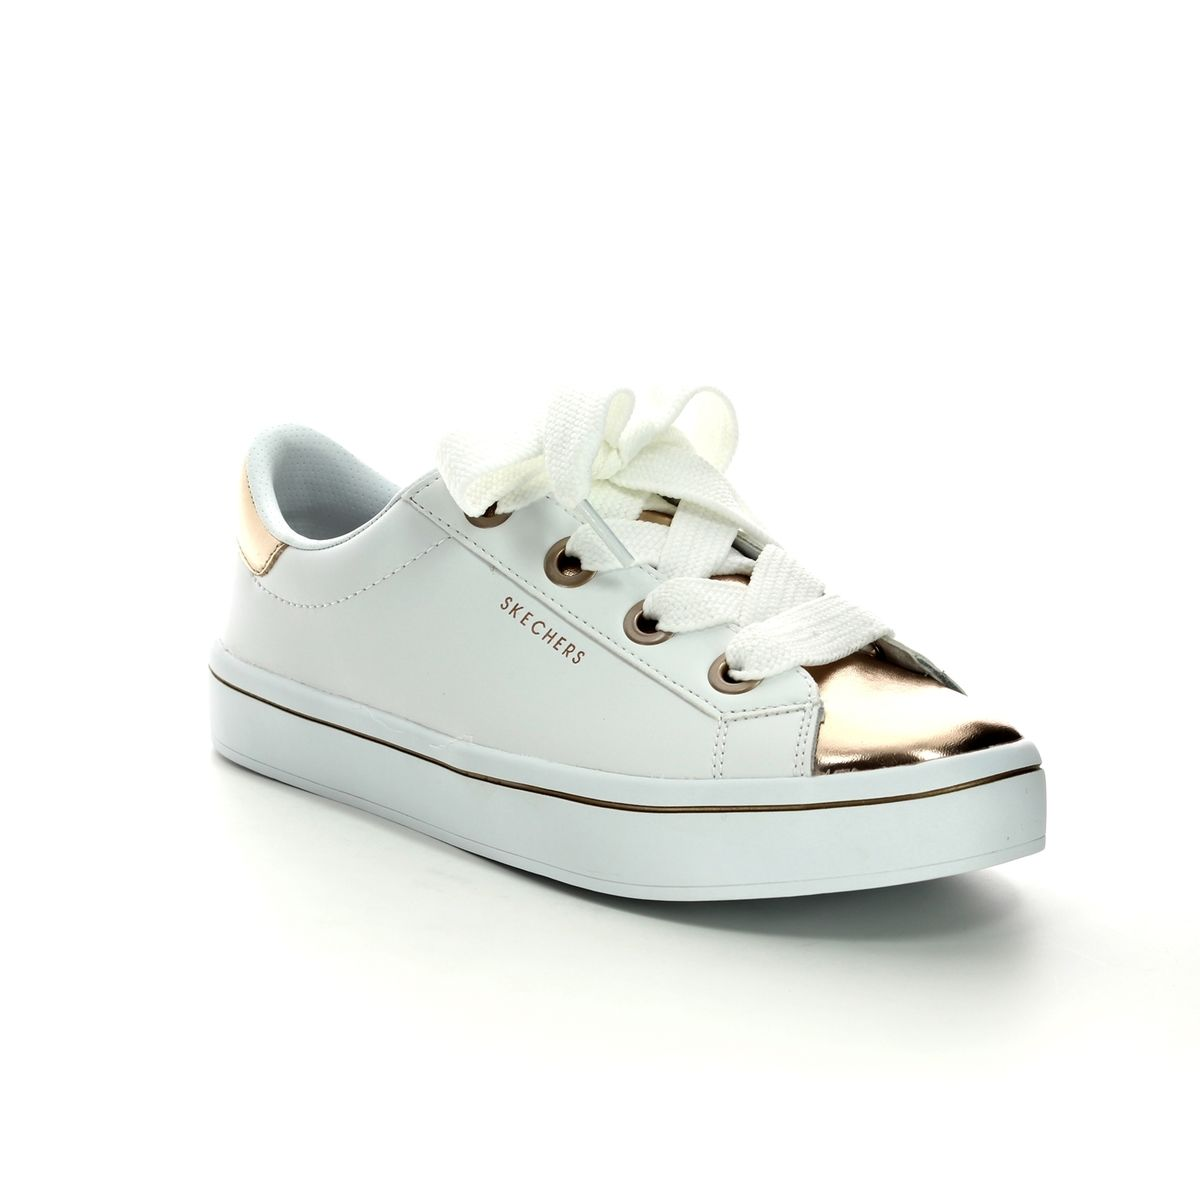 e13005aaa Skechers Hi Lites Medal SN982 WTRG White - rose gold trainers